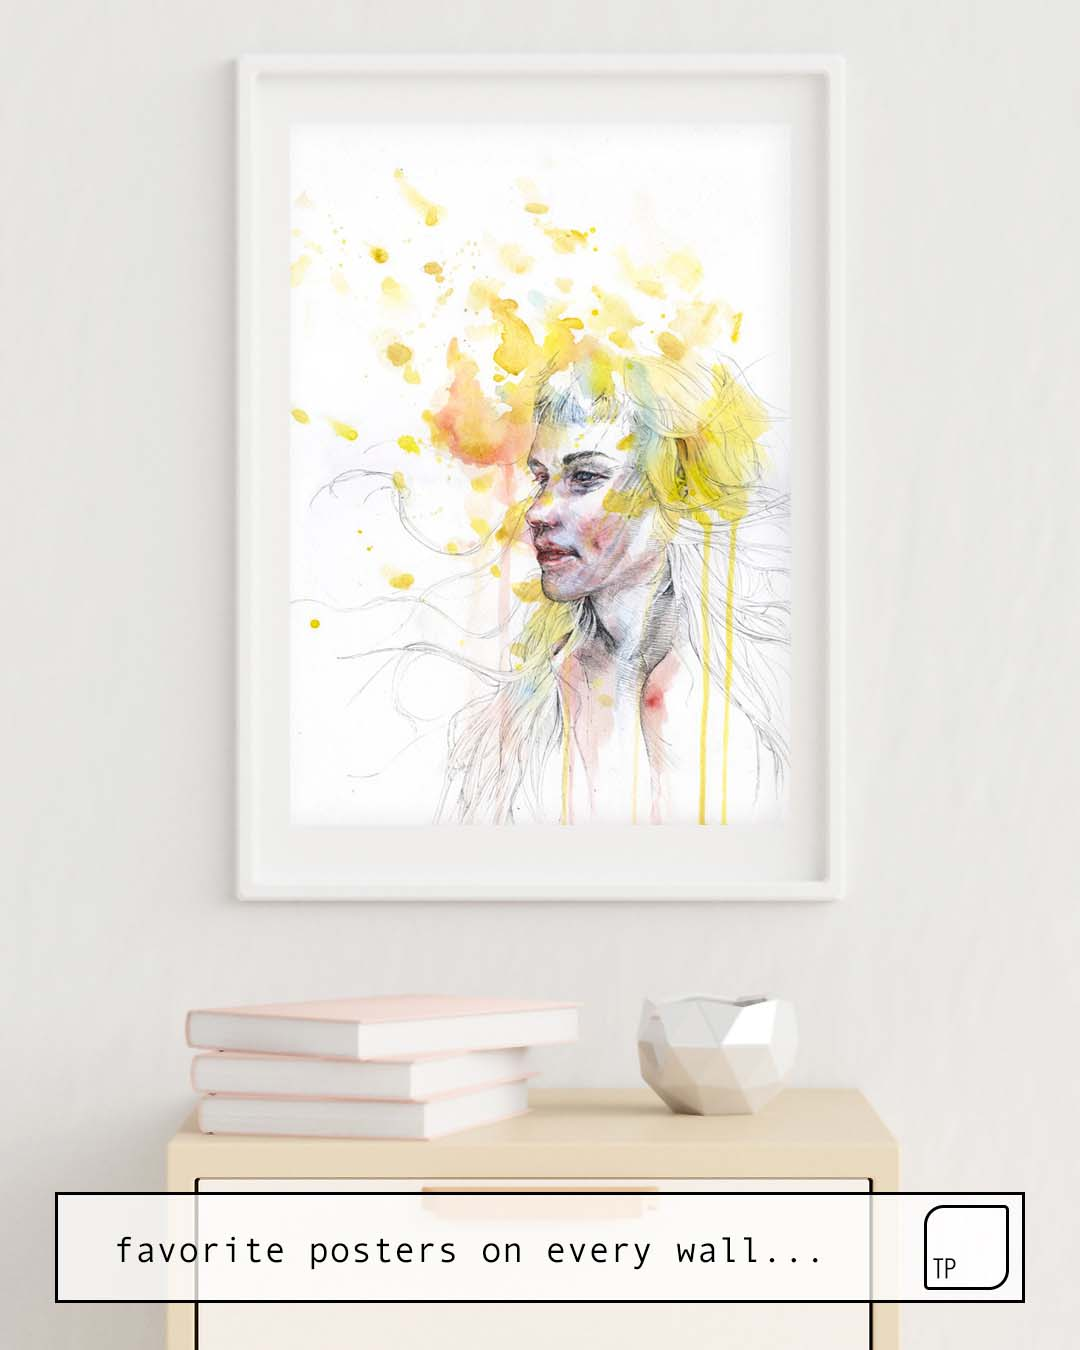 The photo shows an example of furnishing with the motif TAKE YOUR TIME by Agnes Cecile as mural